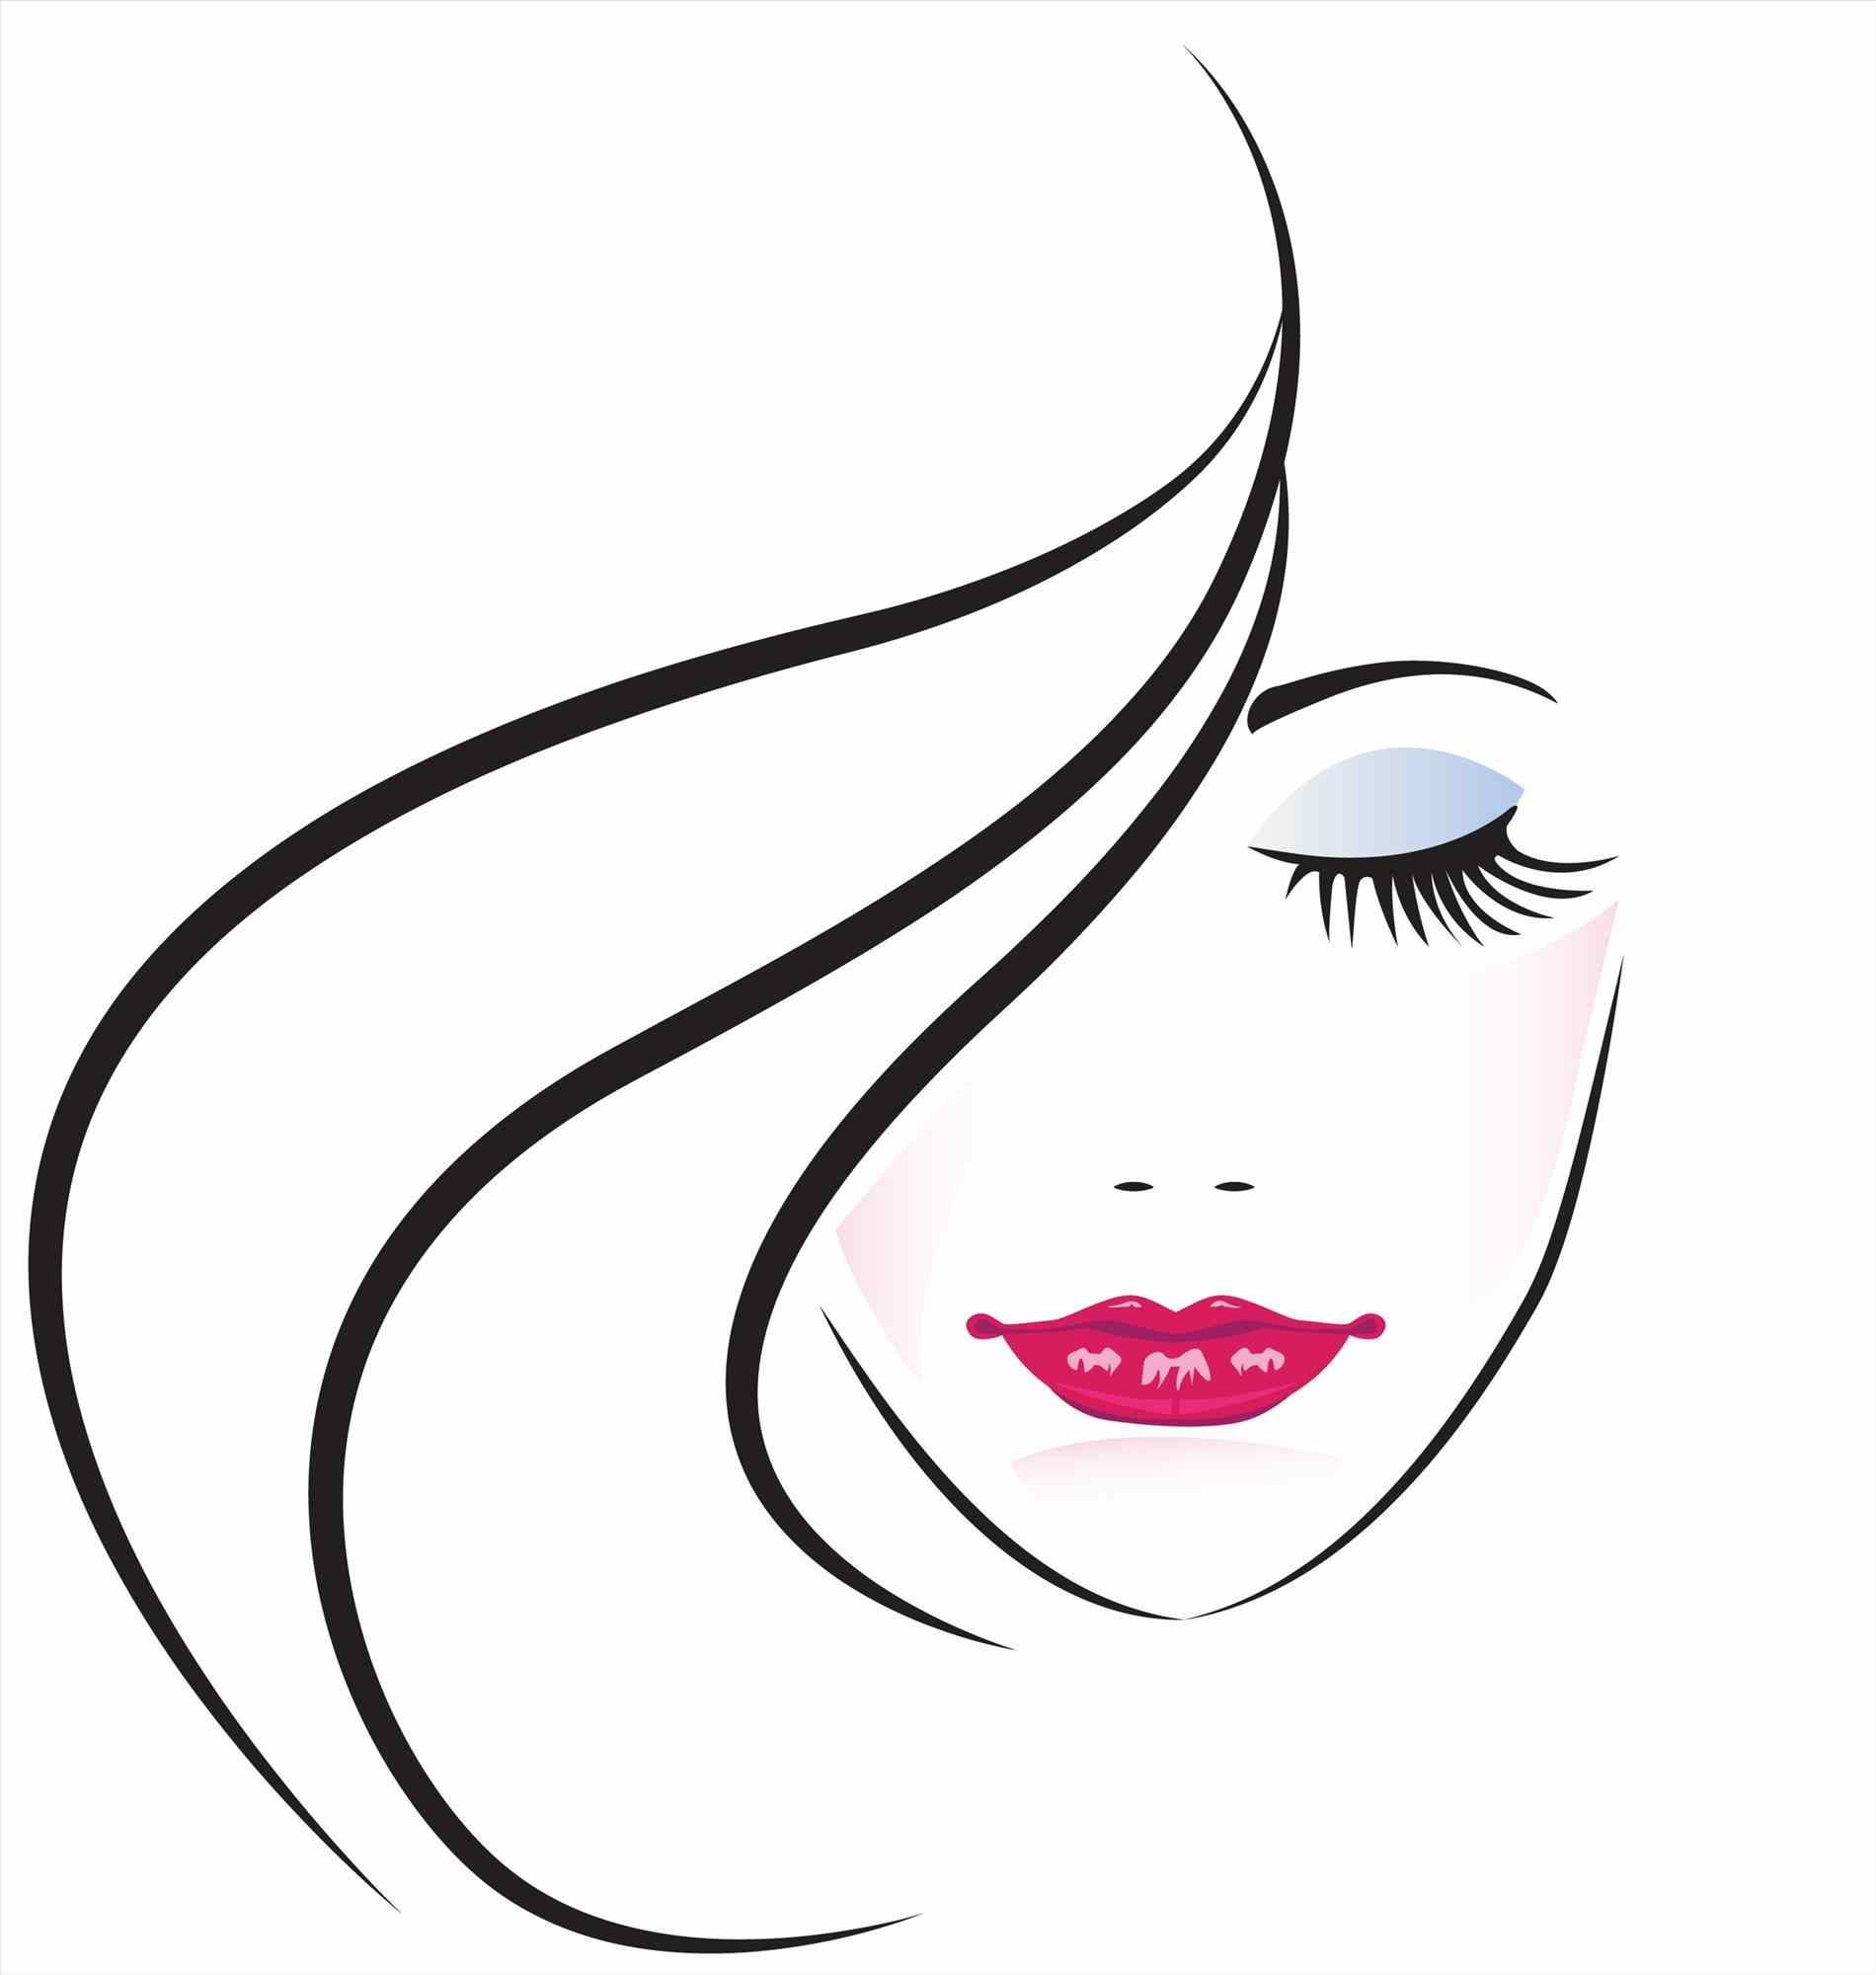 Word siudy net for. Beauty clipart